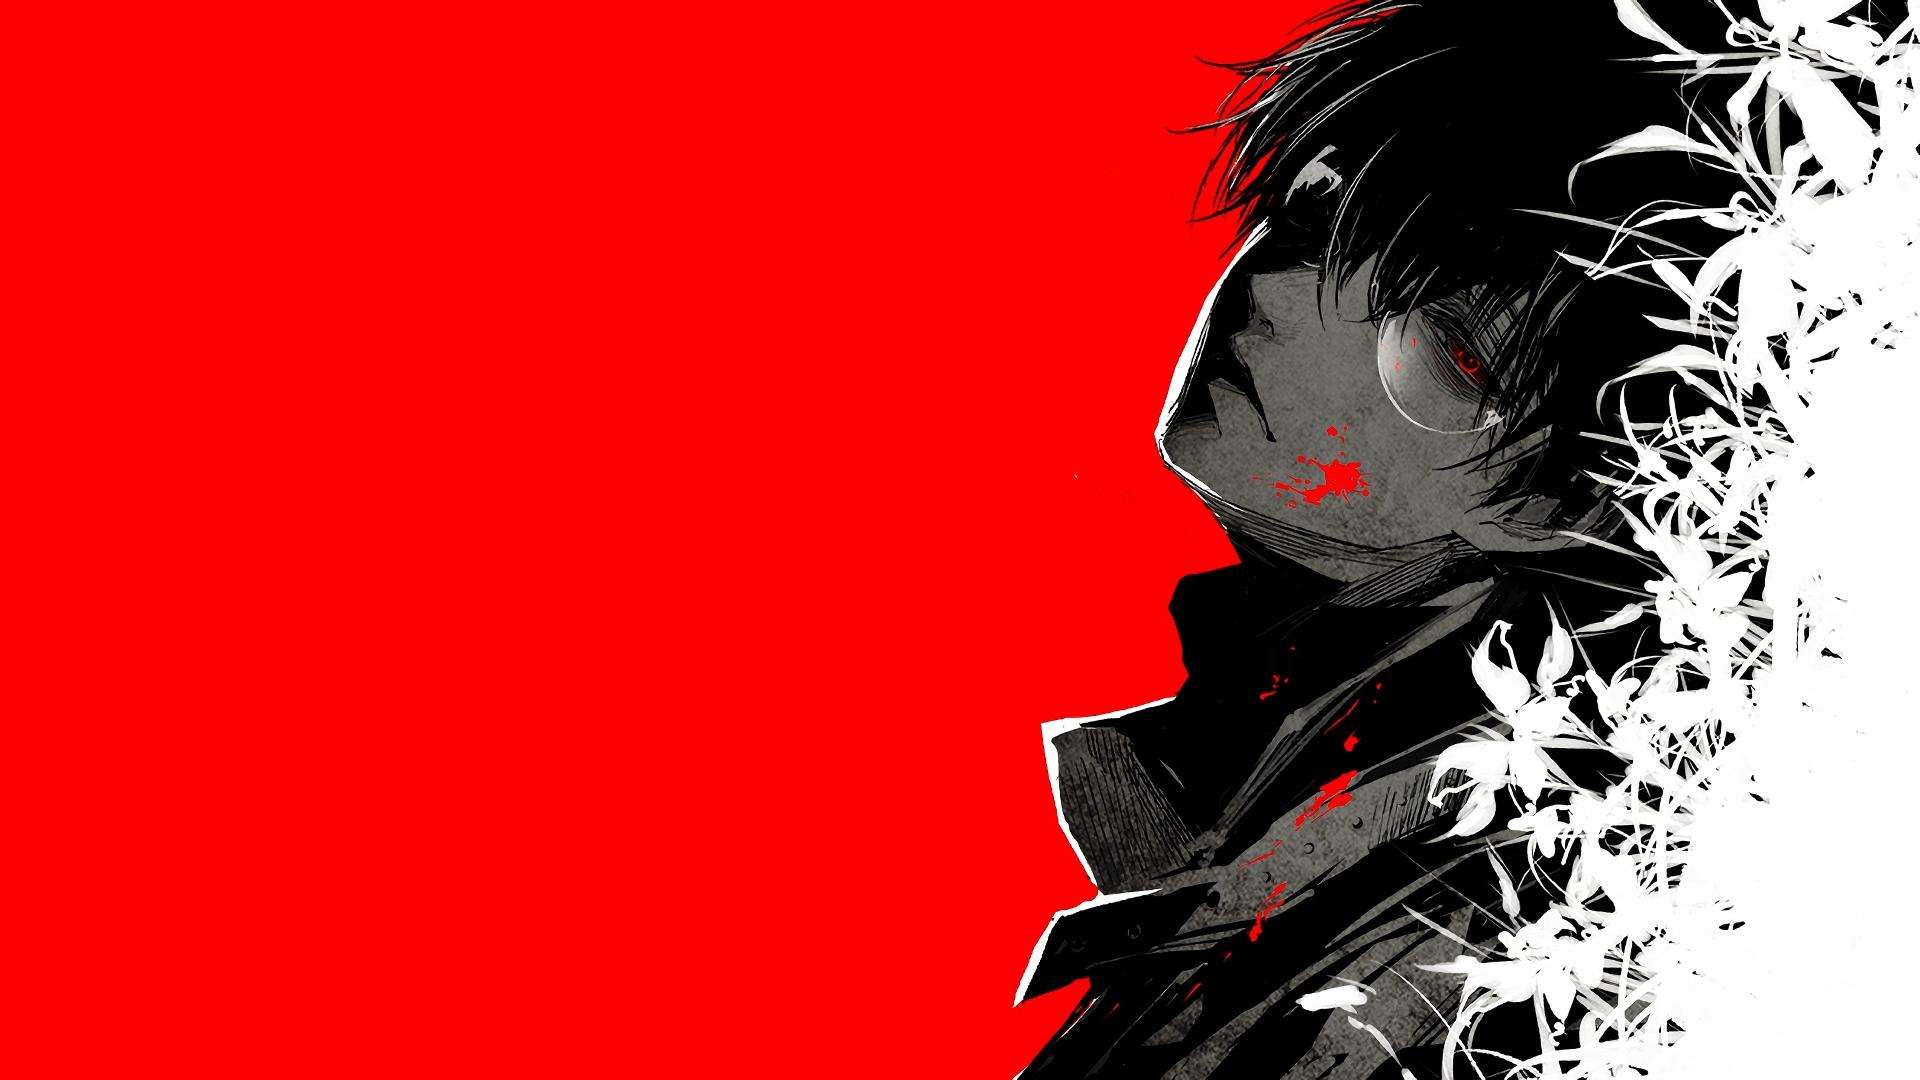 aesthetic ps4 tokyo ghoul wallpapers